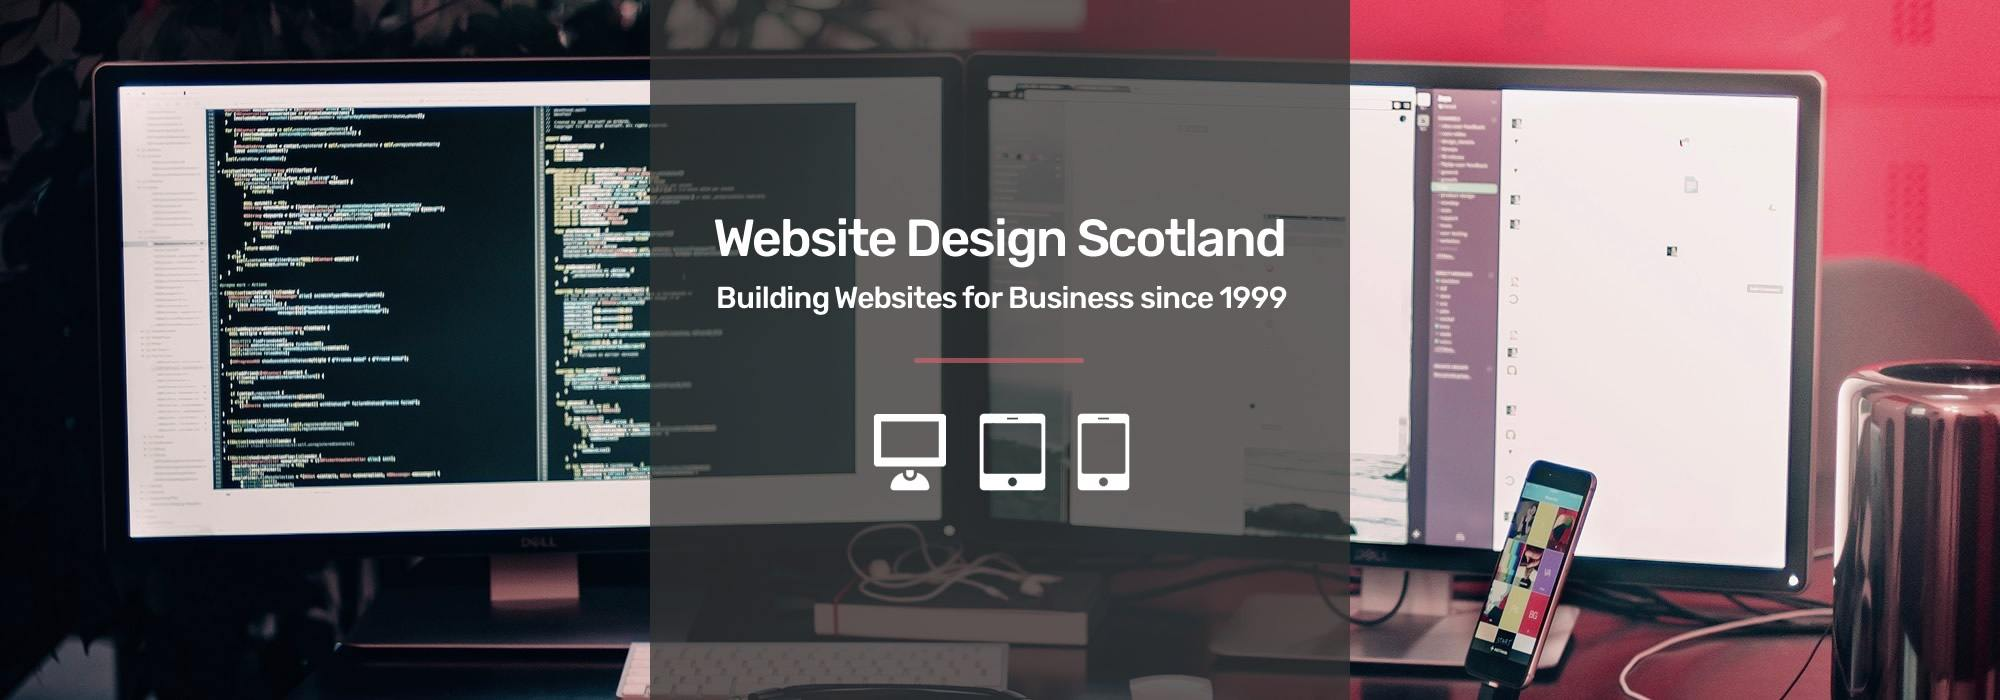 Website Design Scotland